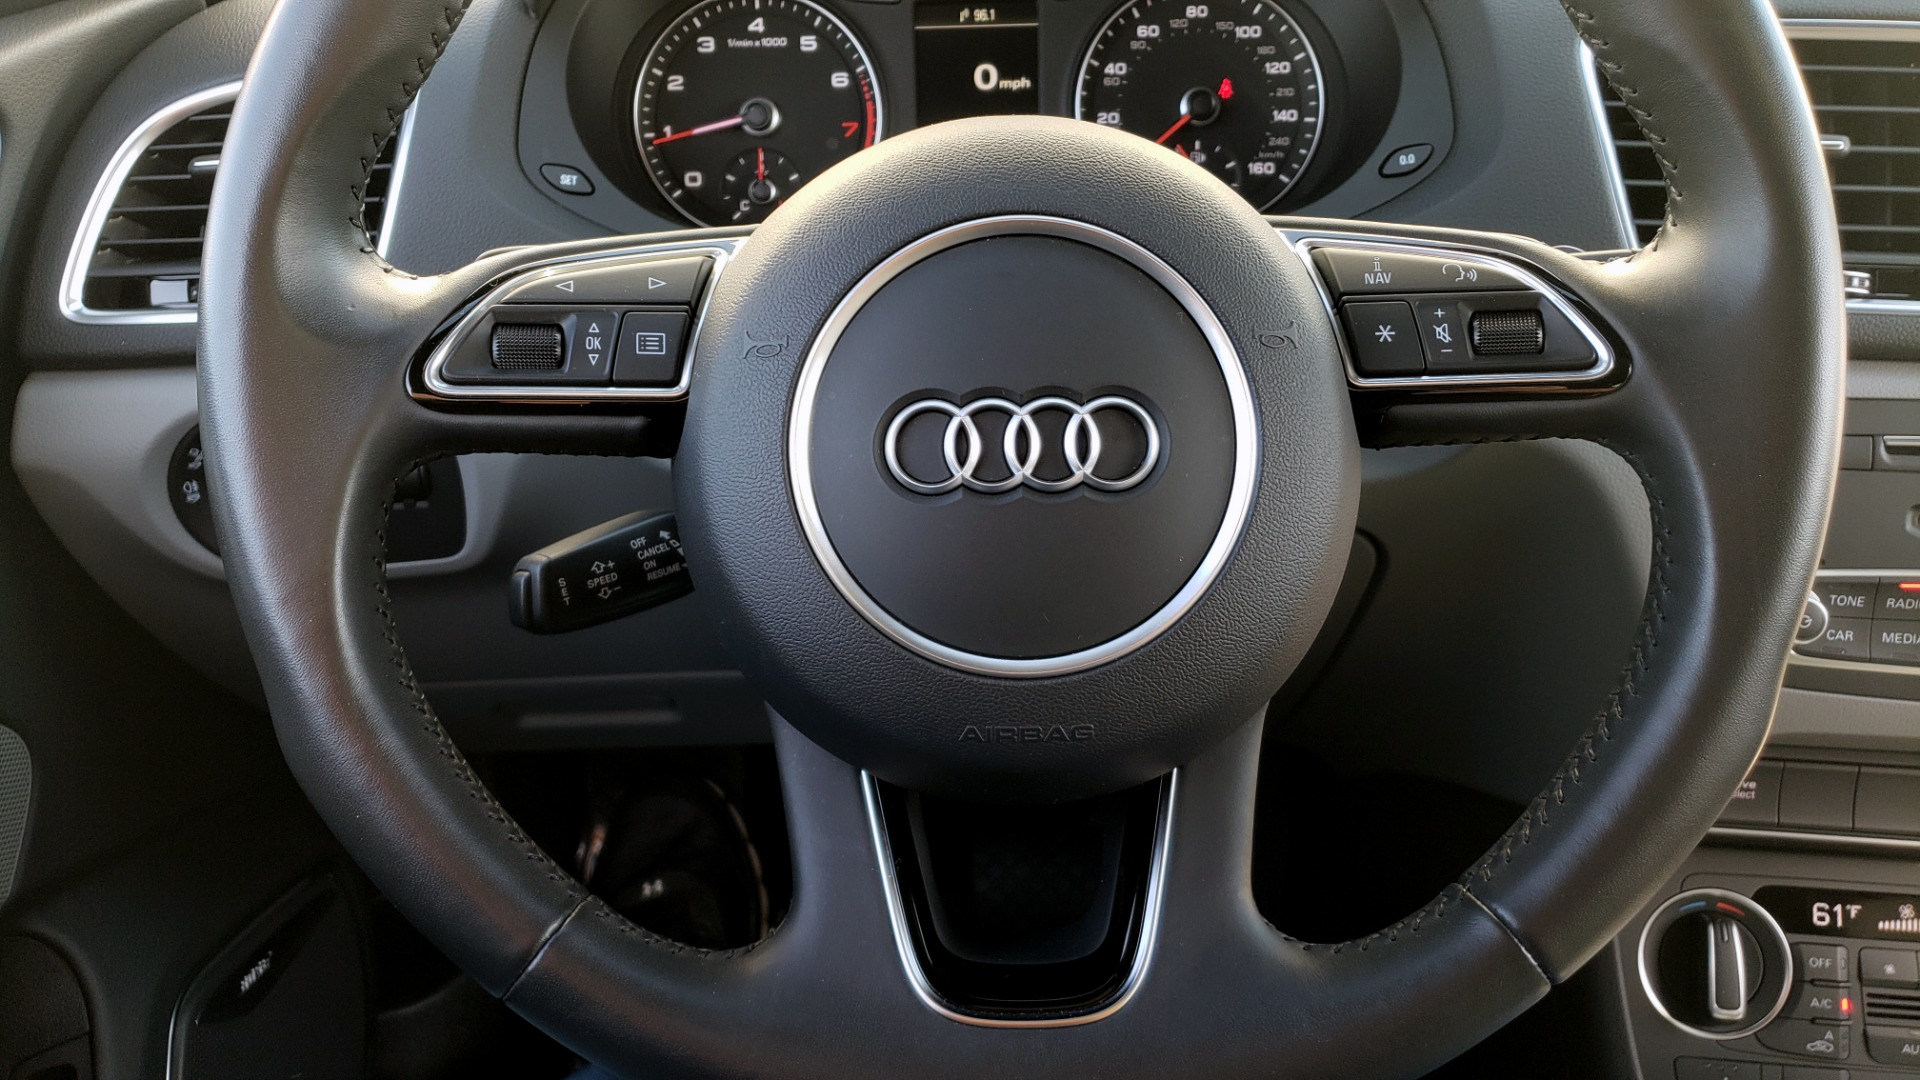 Used 2018 Audi Q3 PREMIUM PLUS 2.0T / SPORT PKG / NAV / BOSE / SUNROOF / REARVIEW for sale Sold at Formula Imports in Charlotte NC 28227 35